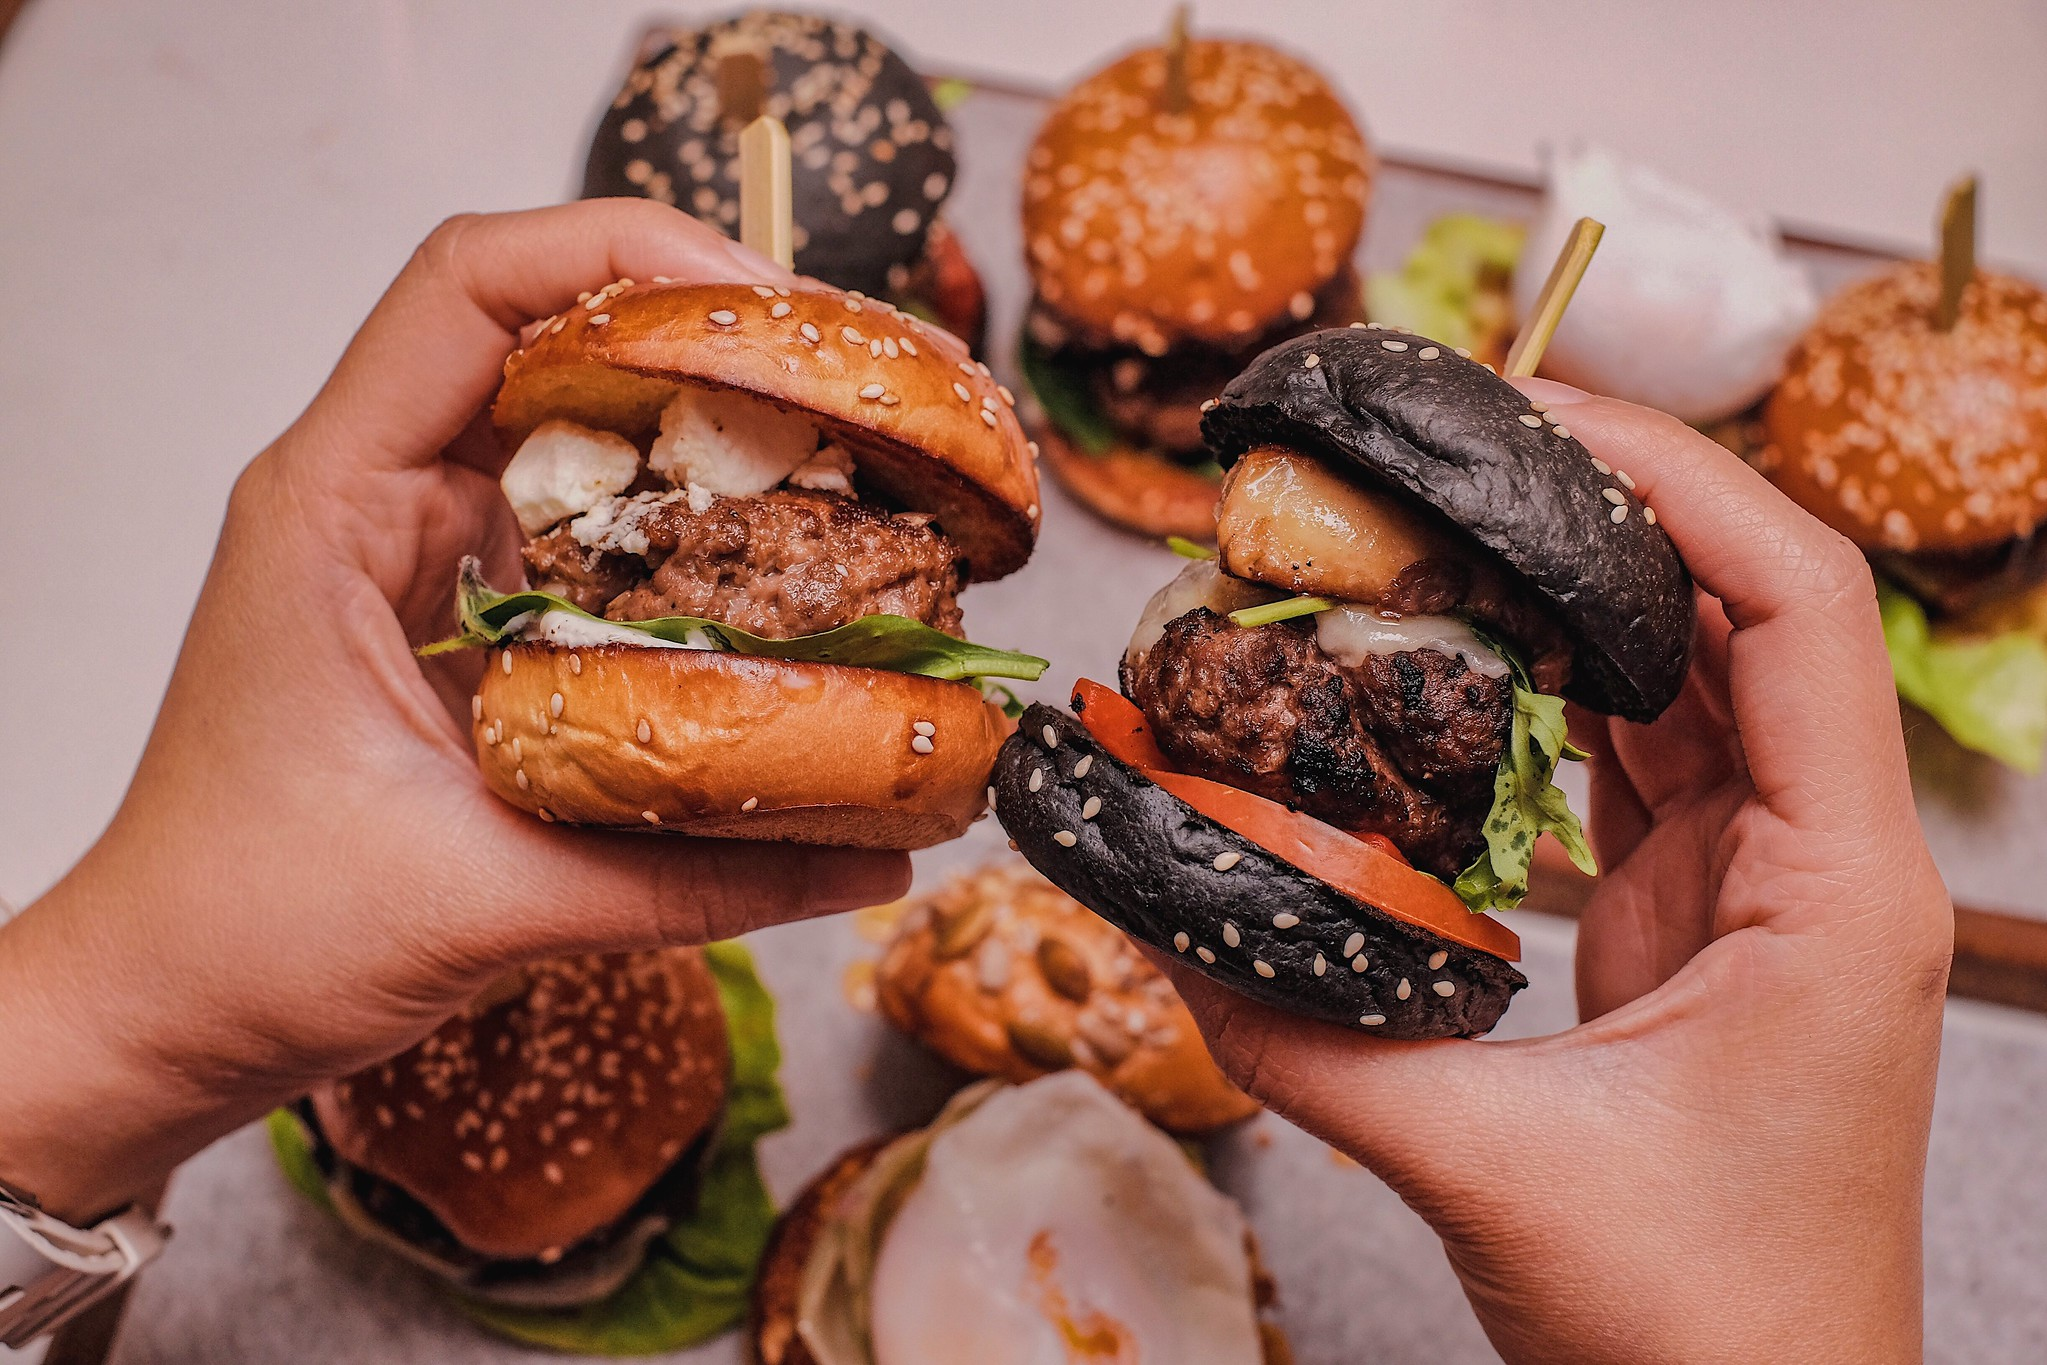 [SG EATS] 4 Juicy, Irresistible Gourmet Burgers At Crossroads Café | Singapore Marriott Tang Plaza Singapore